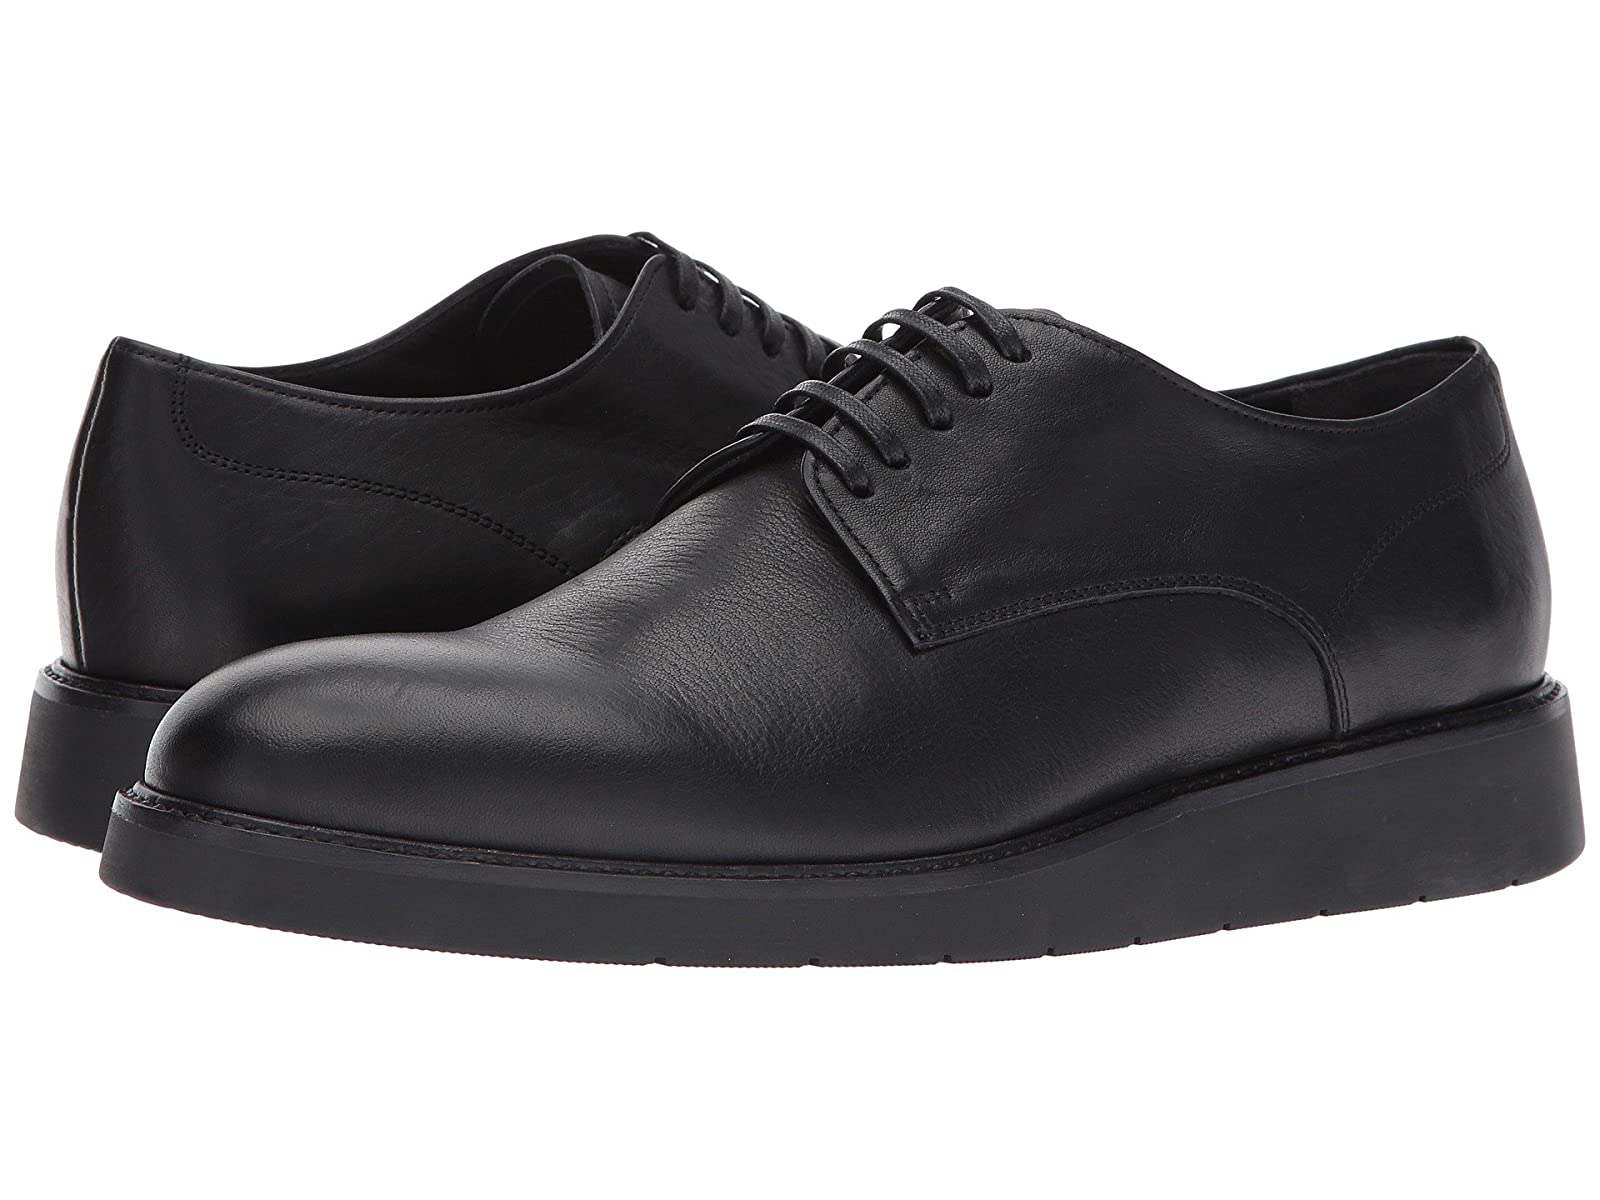 Vince ProctorCheap and distinctive eye-catching shoes